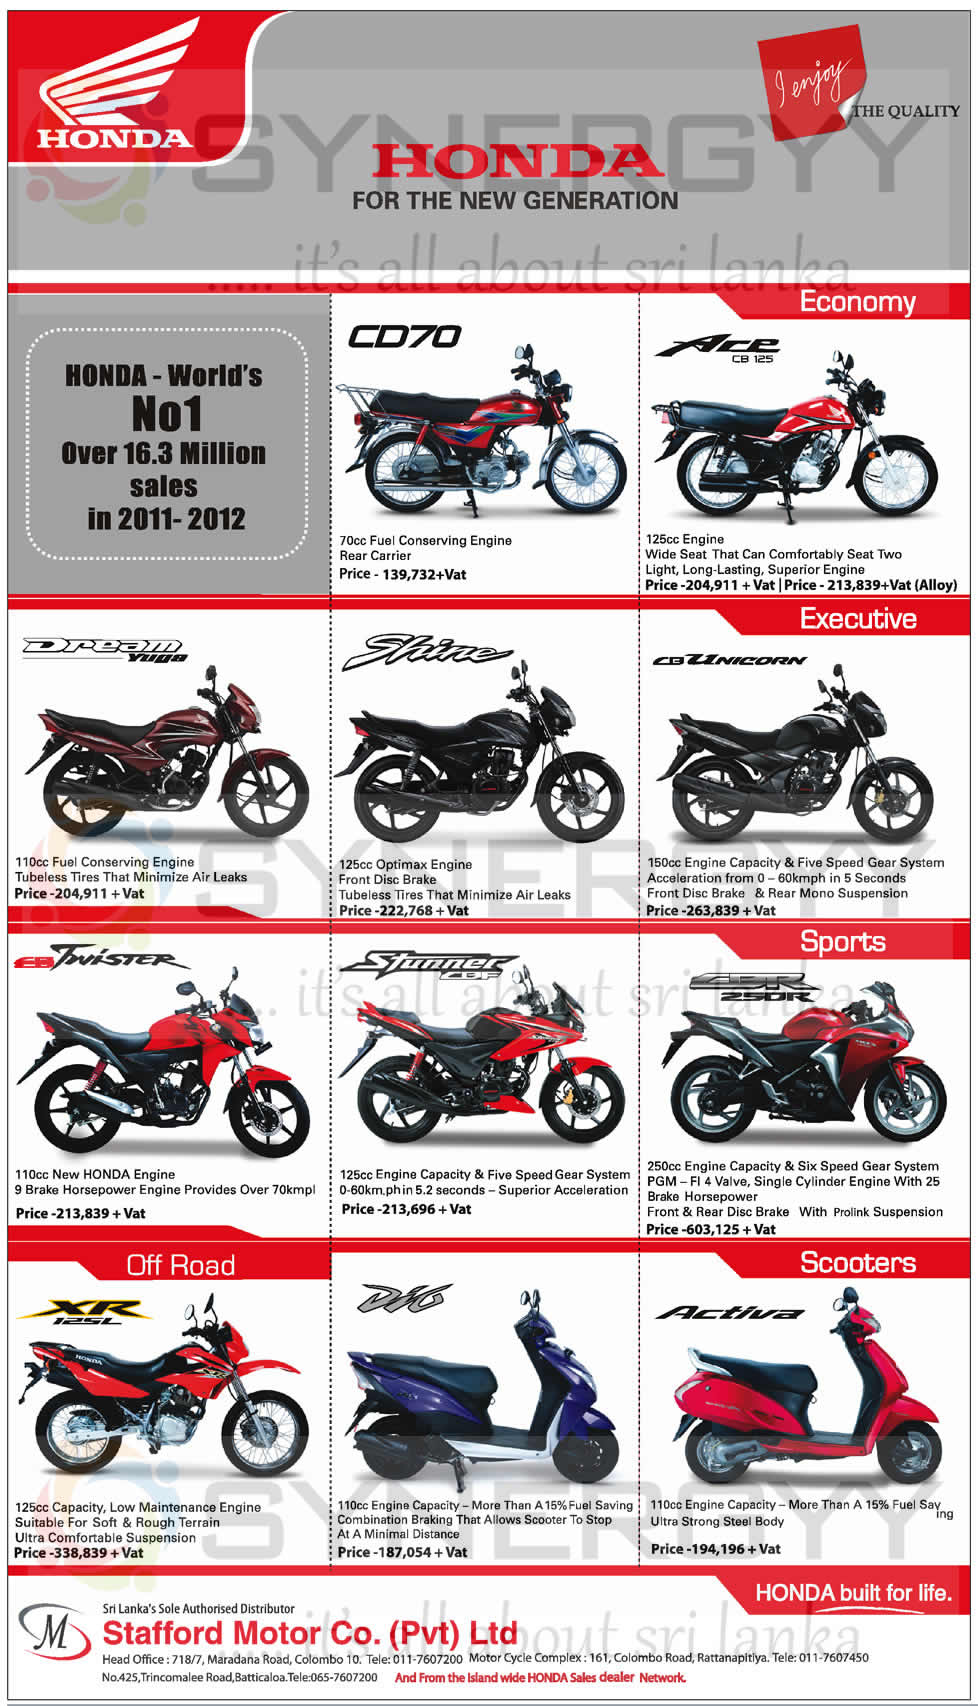 95 Honda Motorcycles Philippines Price List Honda